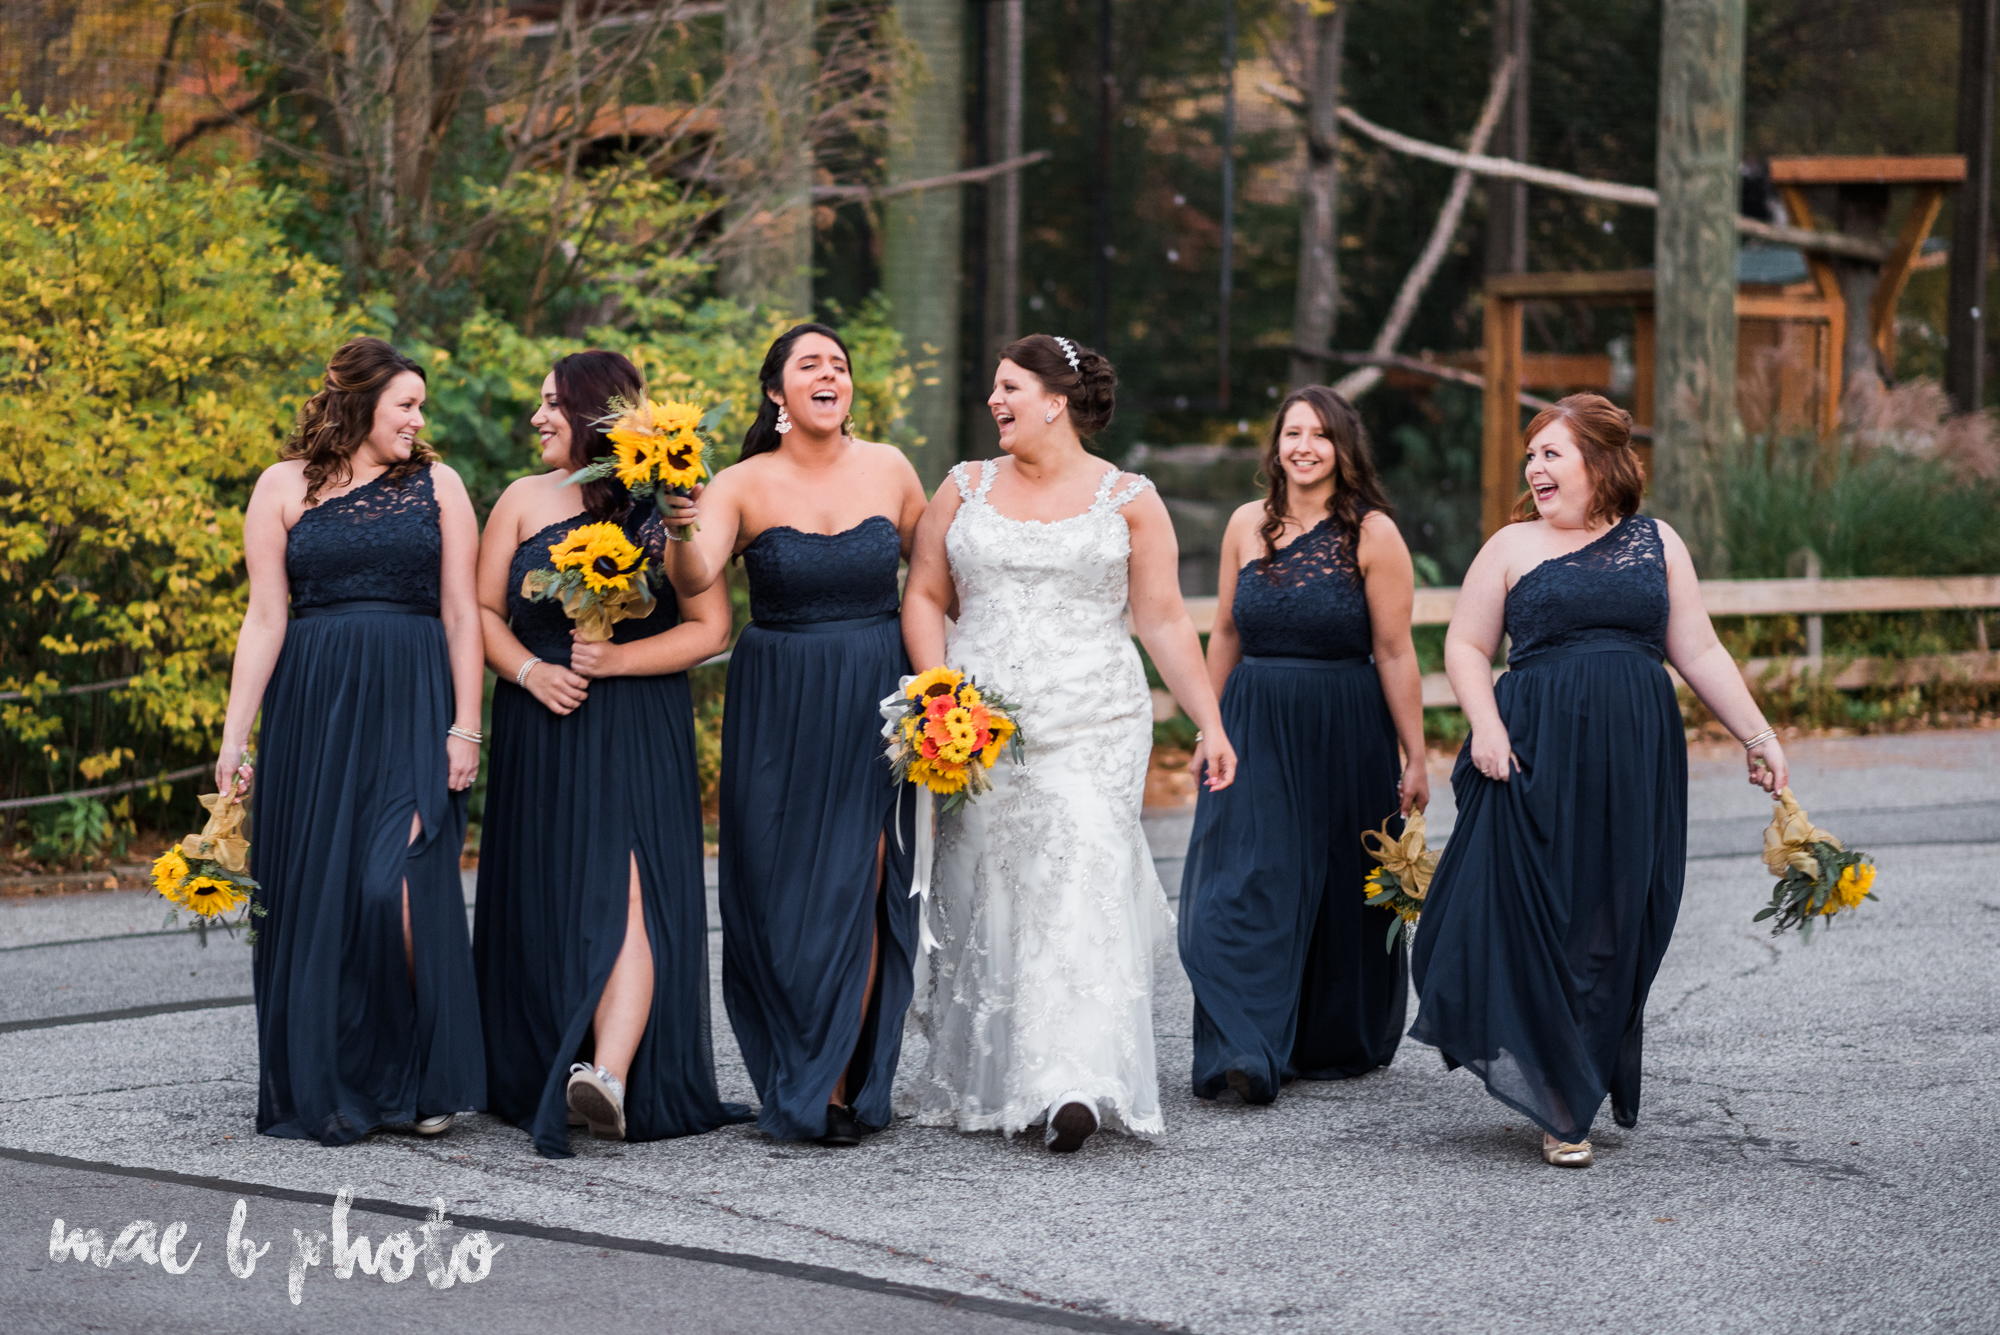 kaylynn & matt's fall zoo wedding at the cleveland metroparks zoo in cleveland ohio photographed by mae b photo-49.jpg